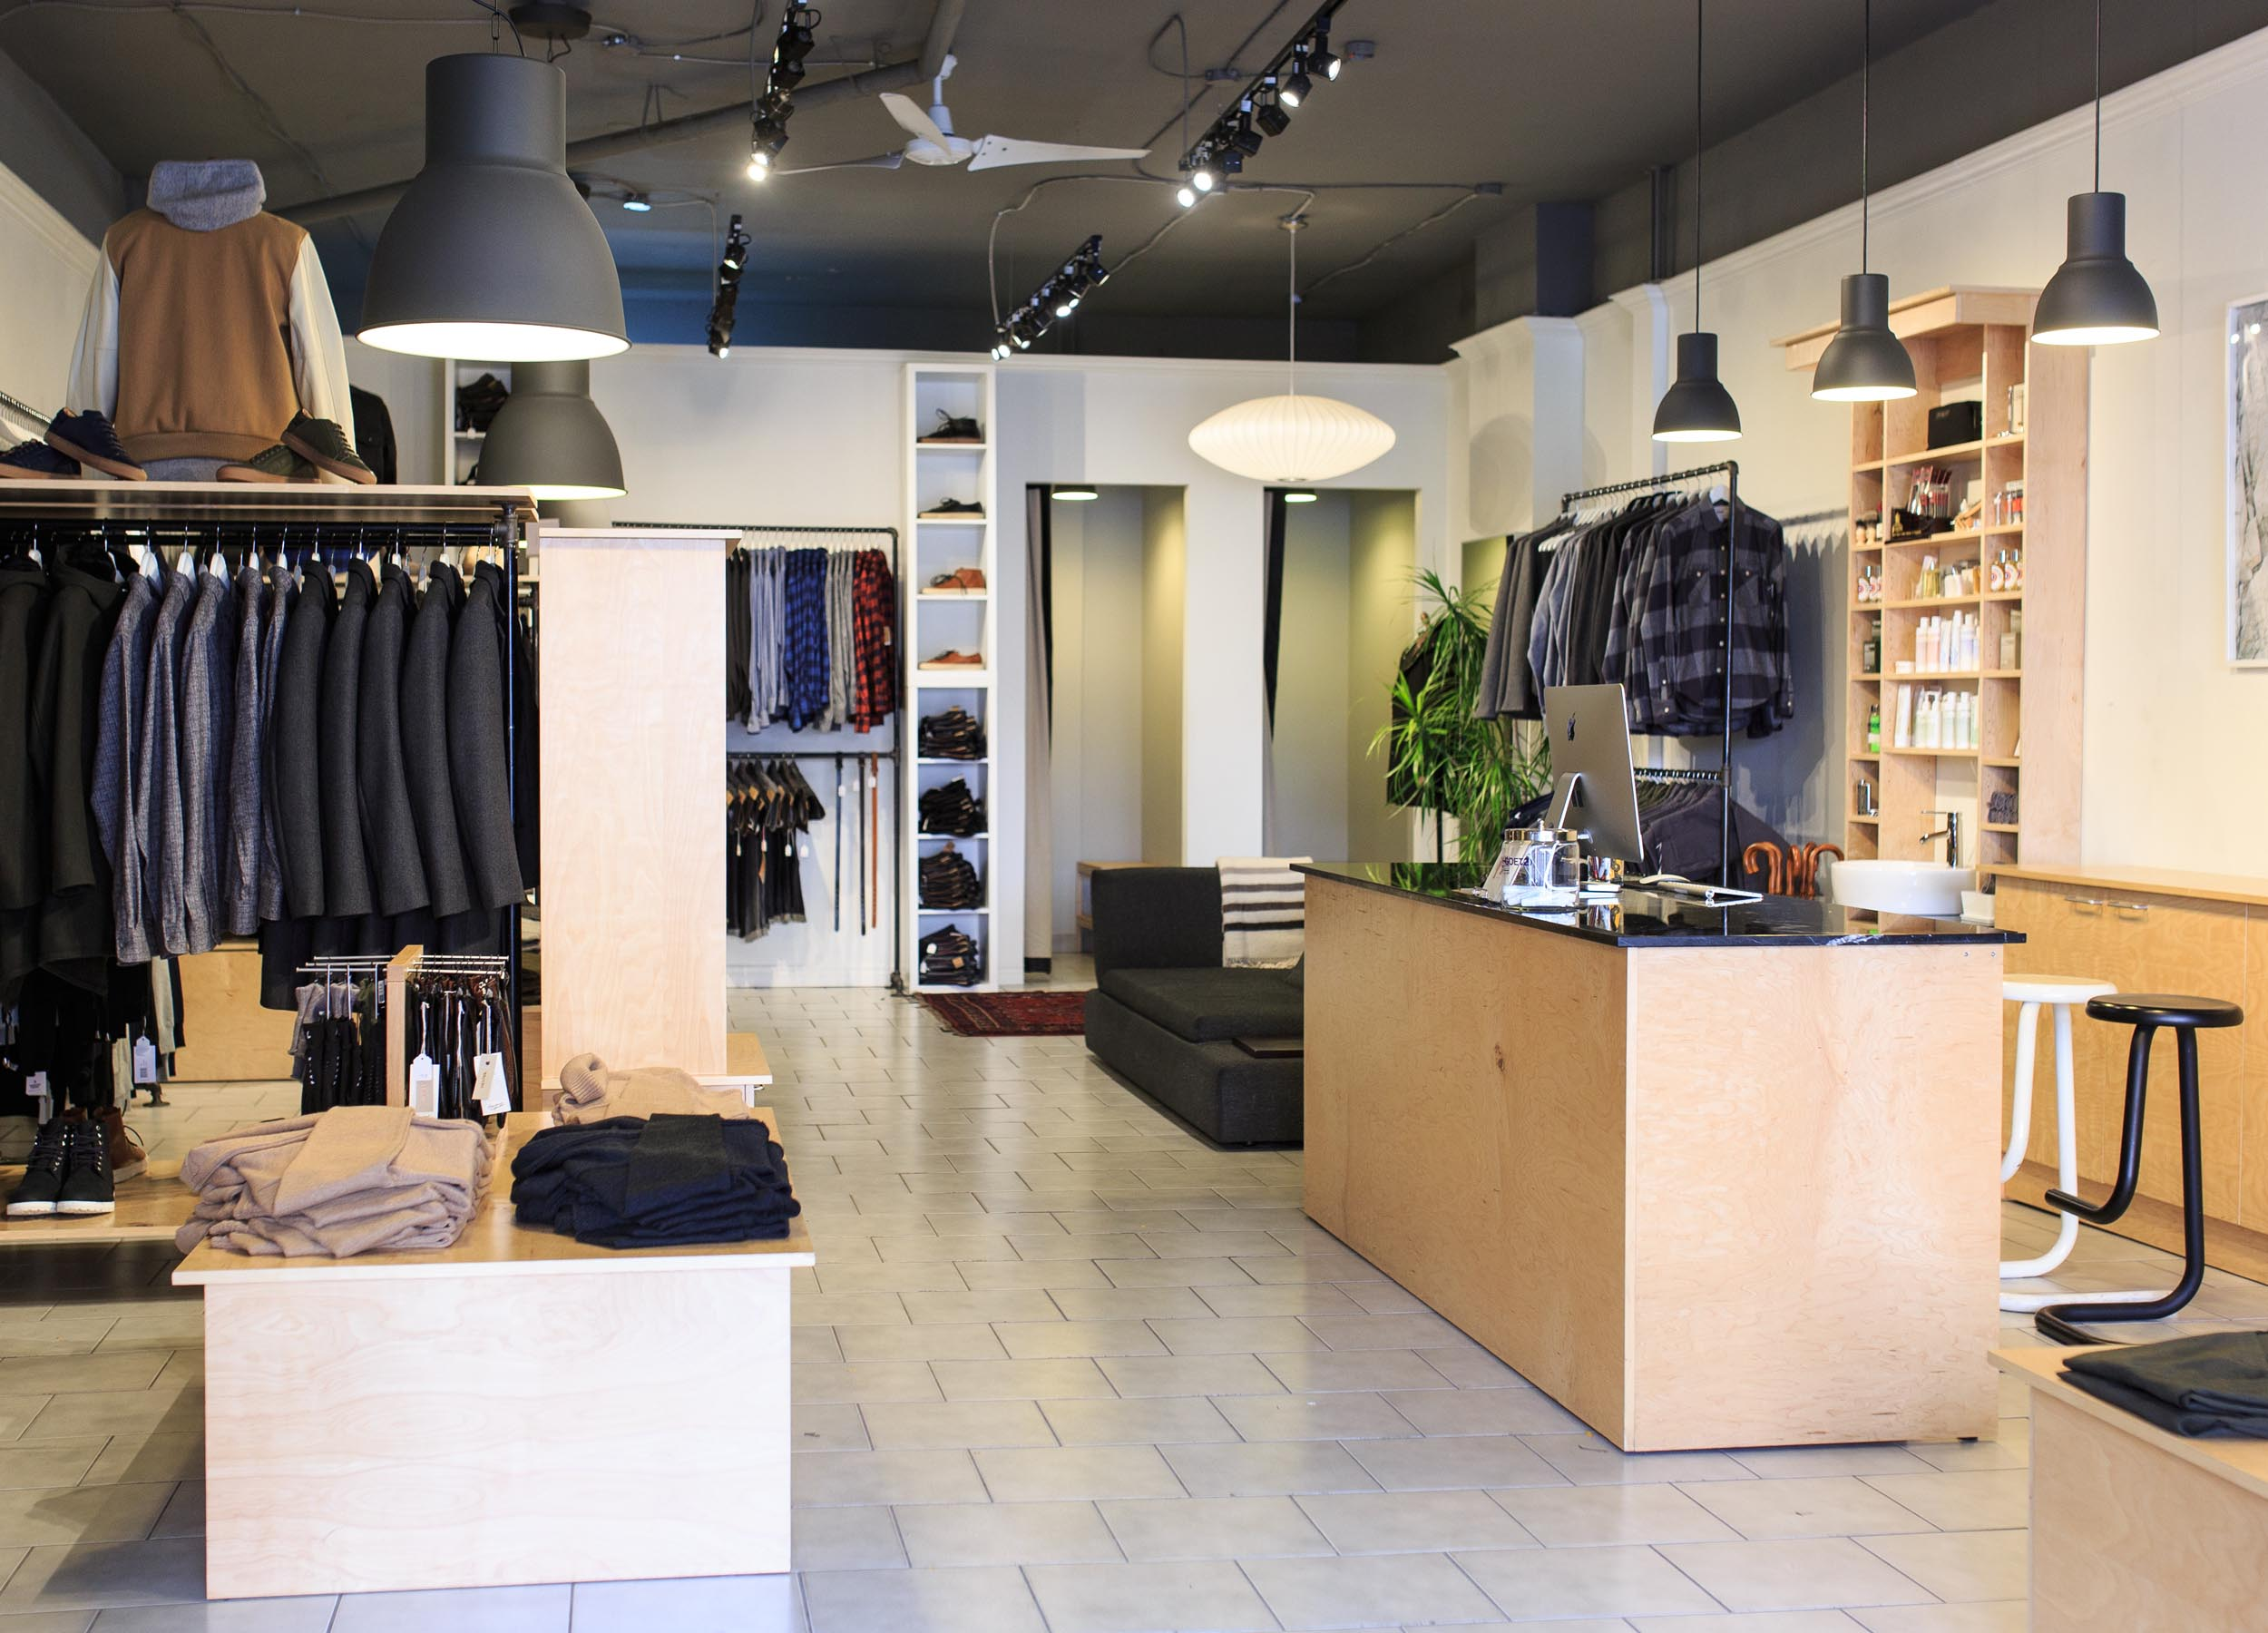 Interior Photography of Gerhard clothing store in Toronto by Worker Bee Supply